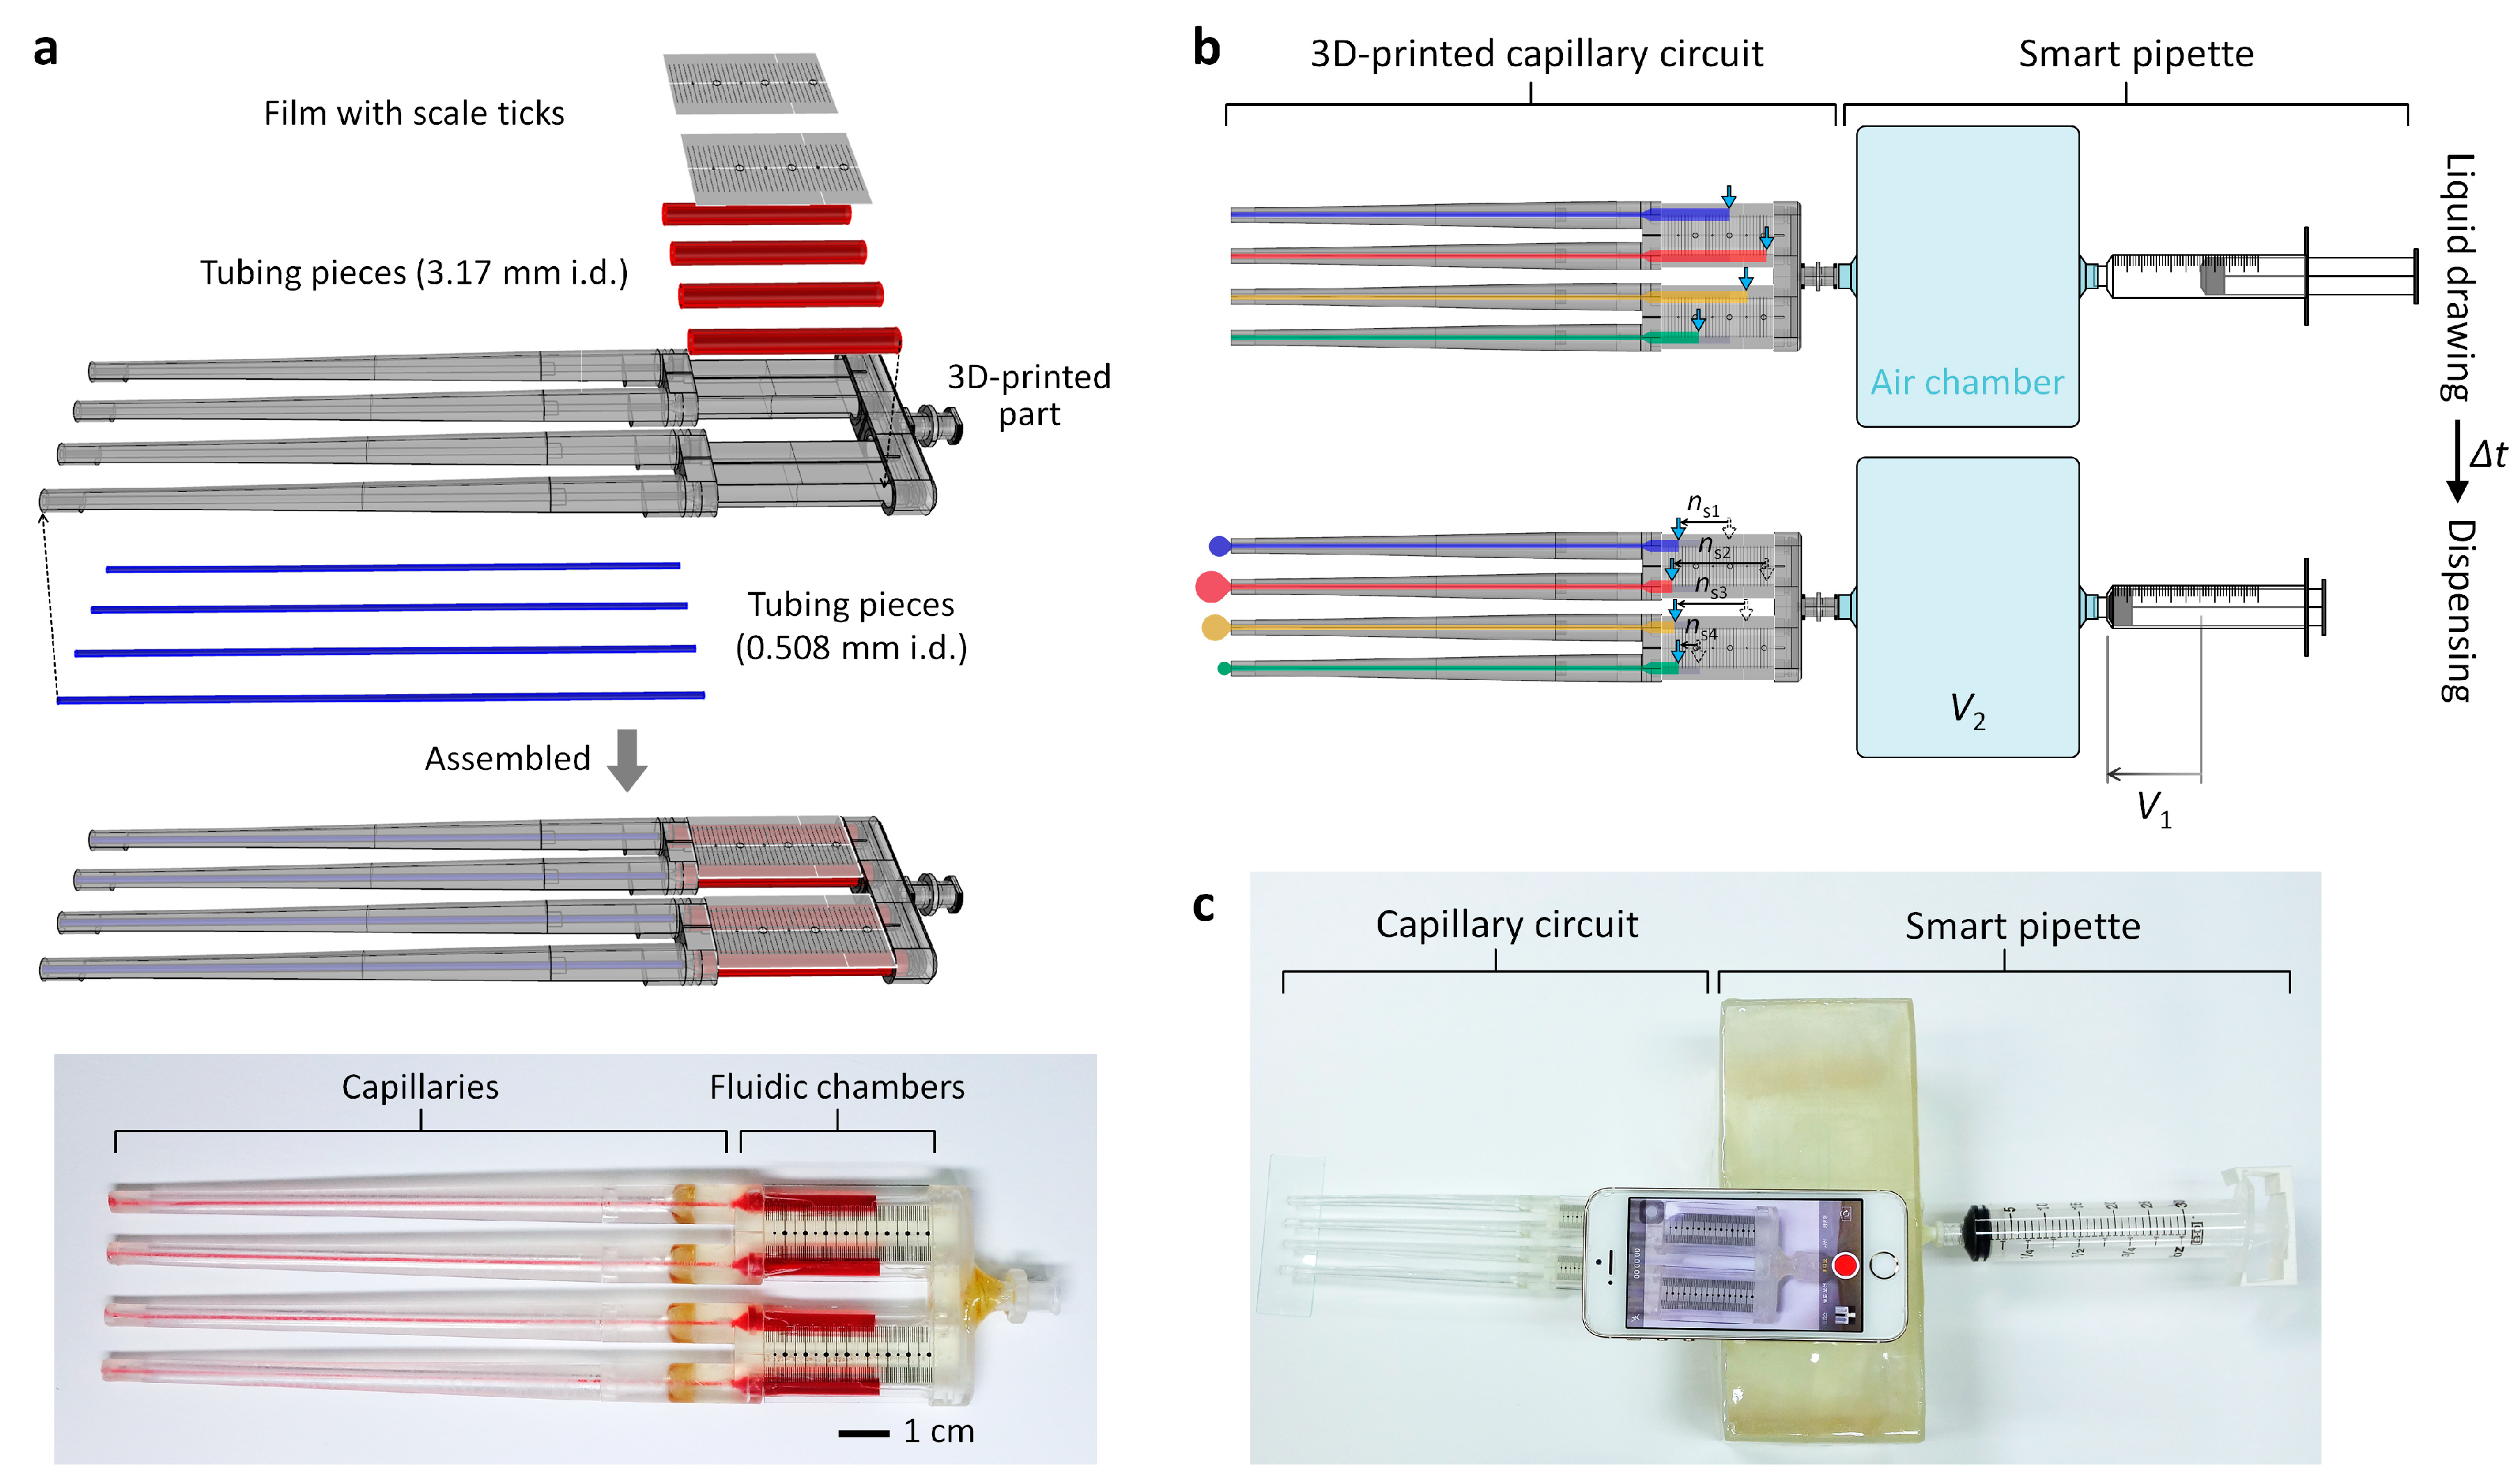 Micromachines | Free Full-Text | 3D-Printed Capillary Circuits for ...